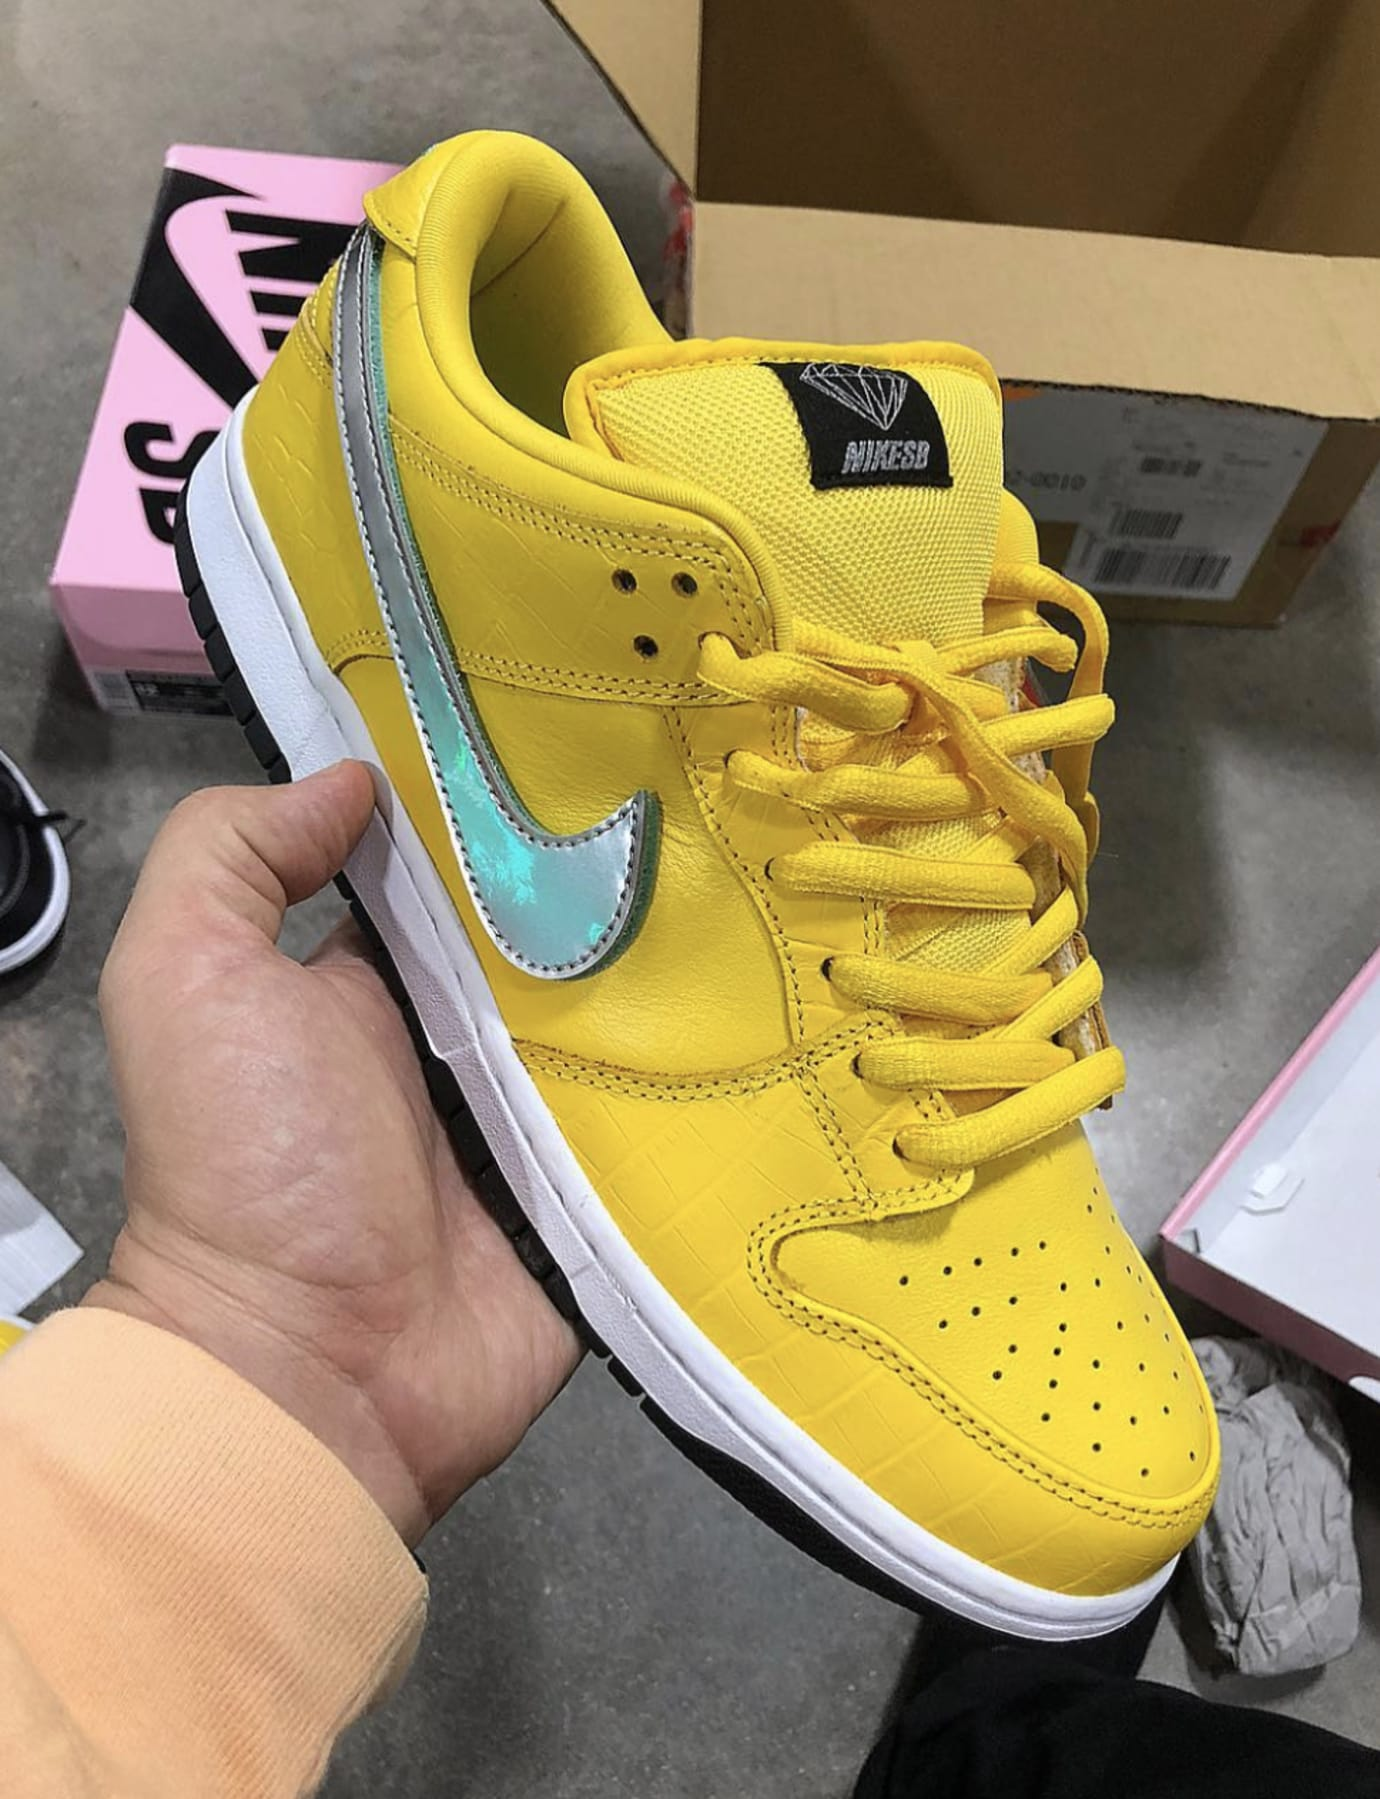 Diamond Supply Co. x Nike SB Dunk Low 'Canary Yellow' 1